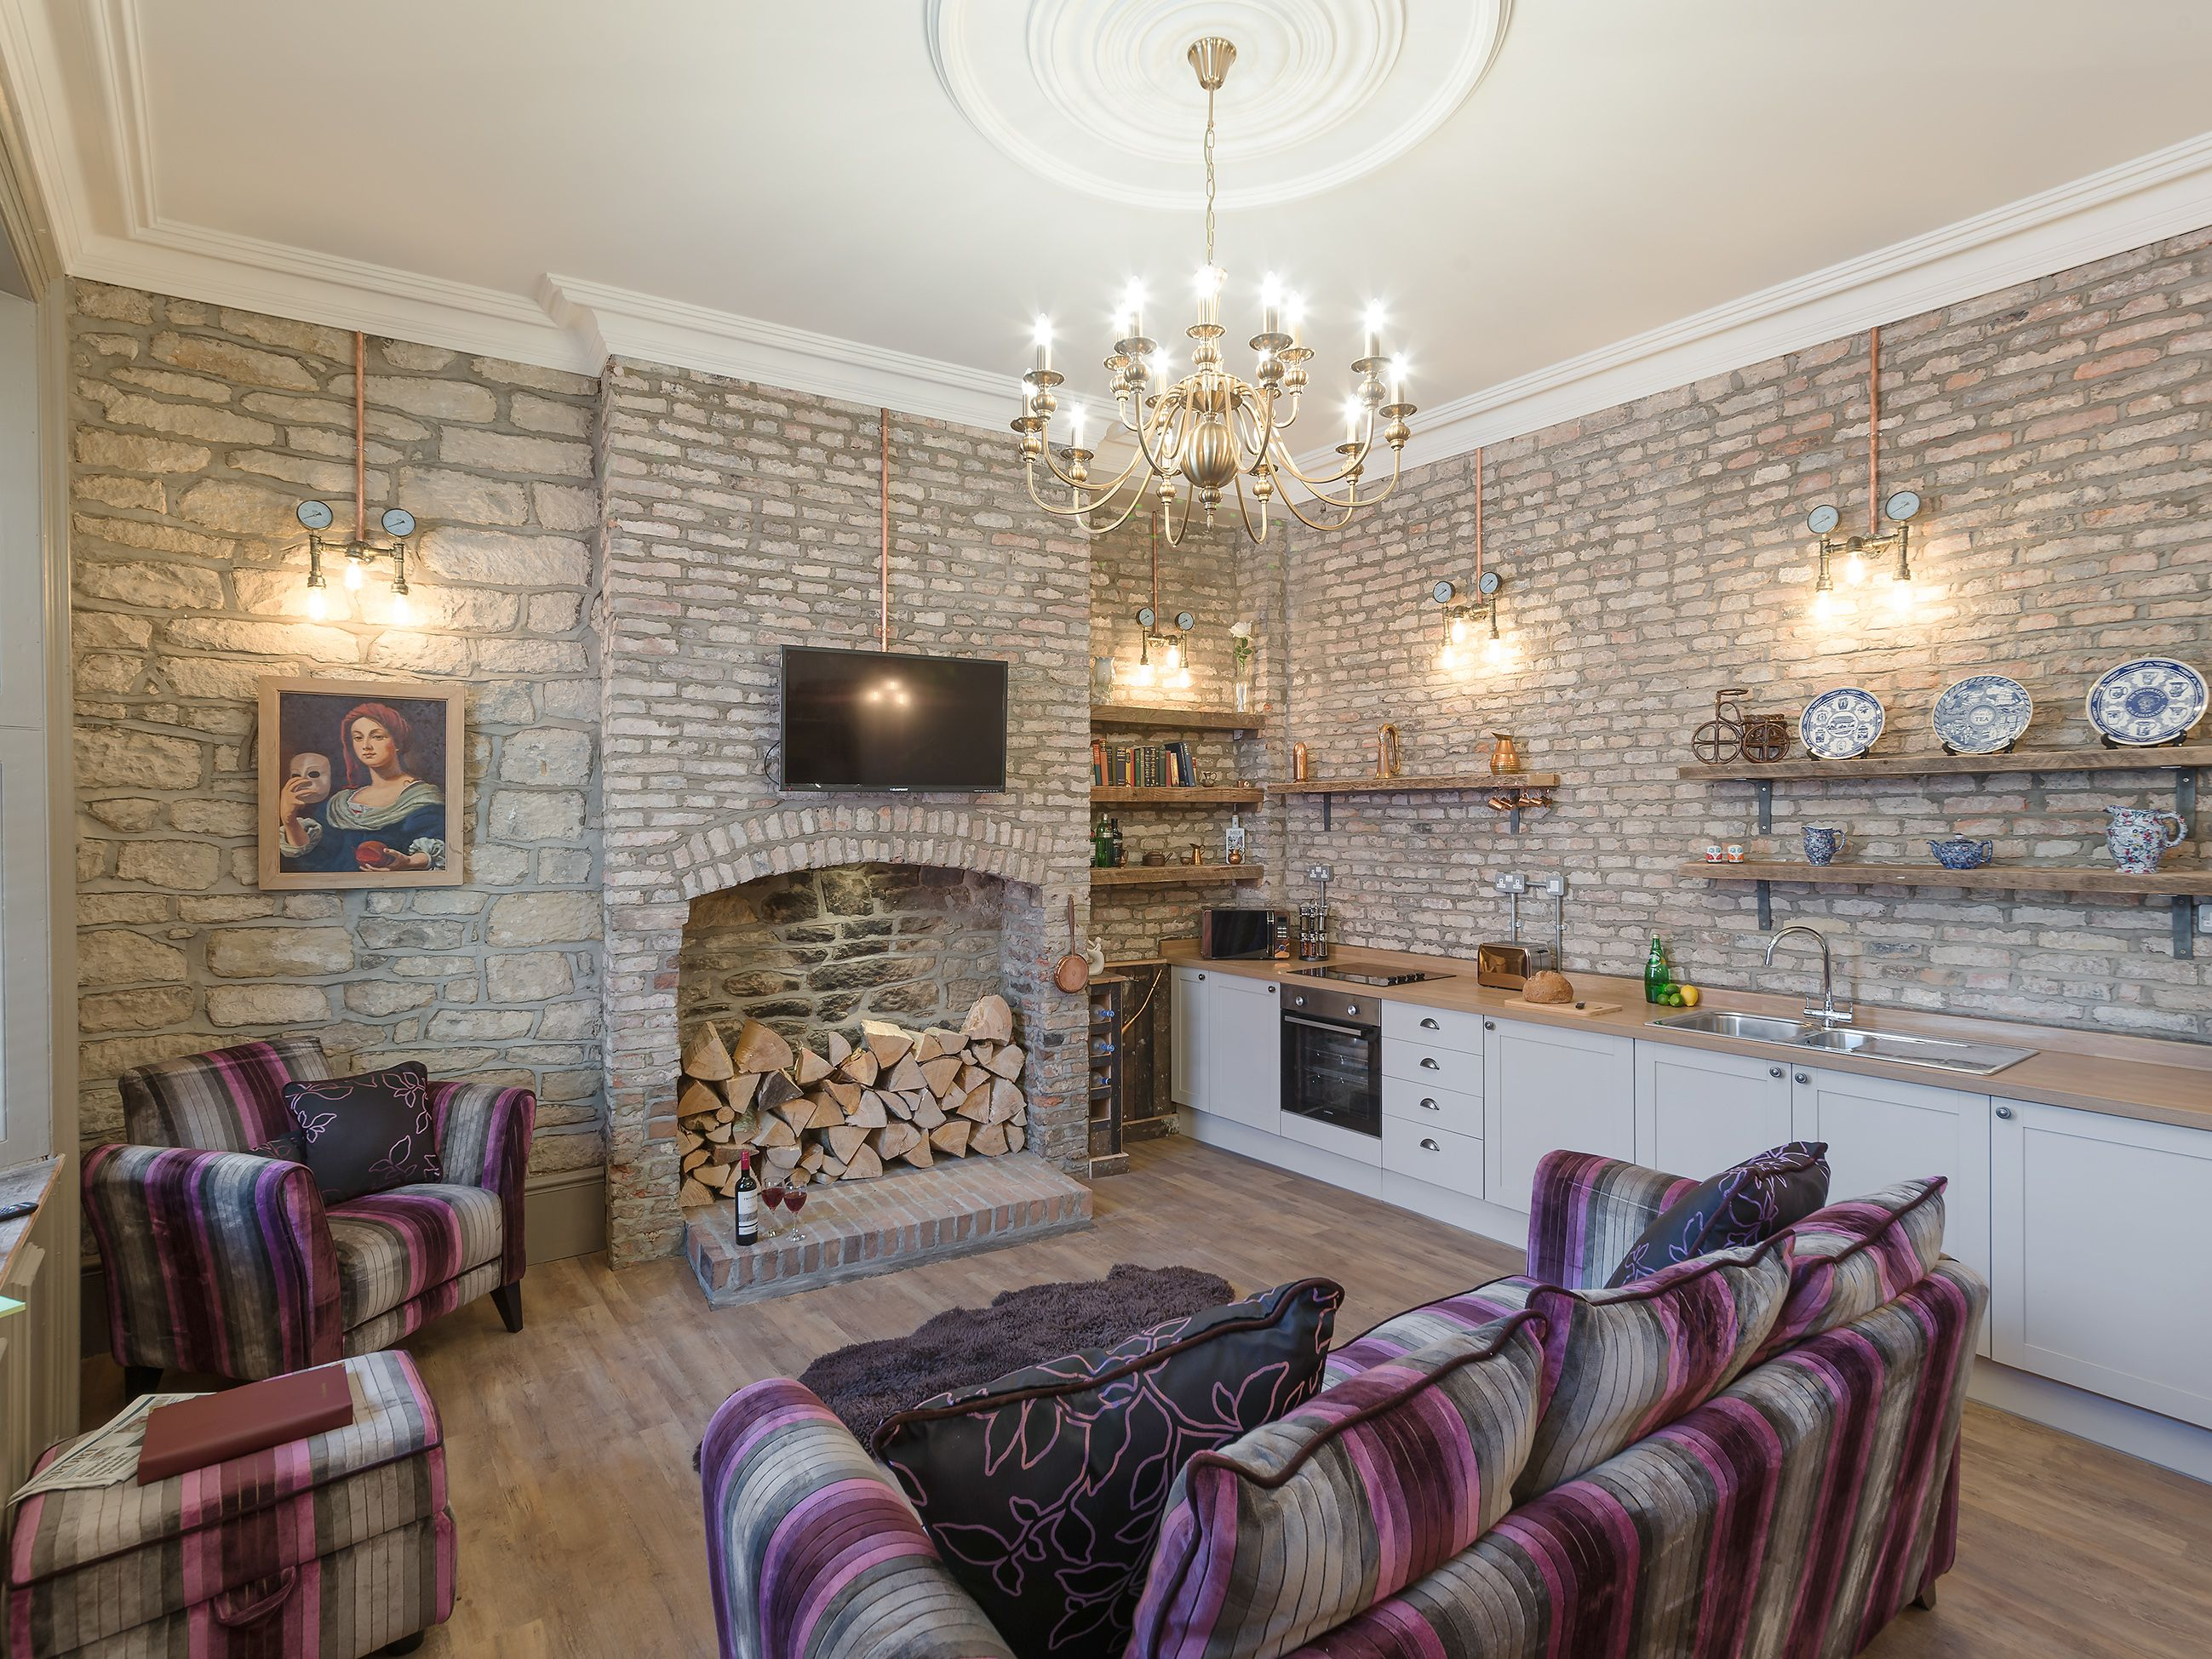 Newgate Apartments The Collingwood Ref Uk3203 In Morpeth